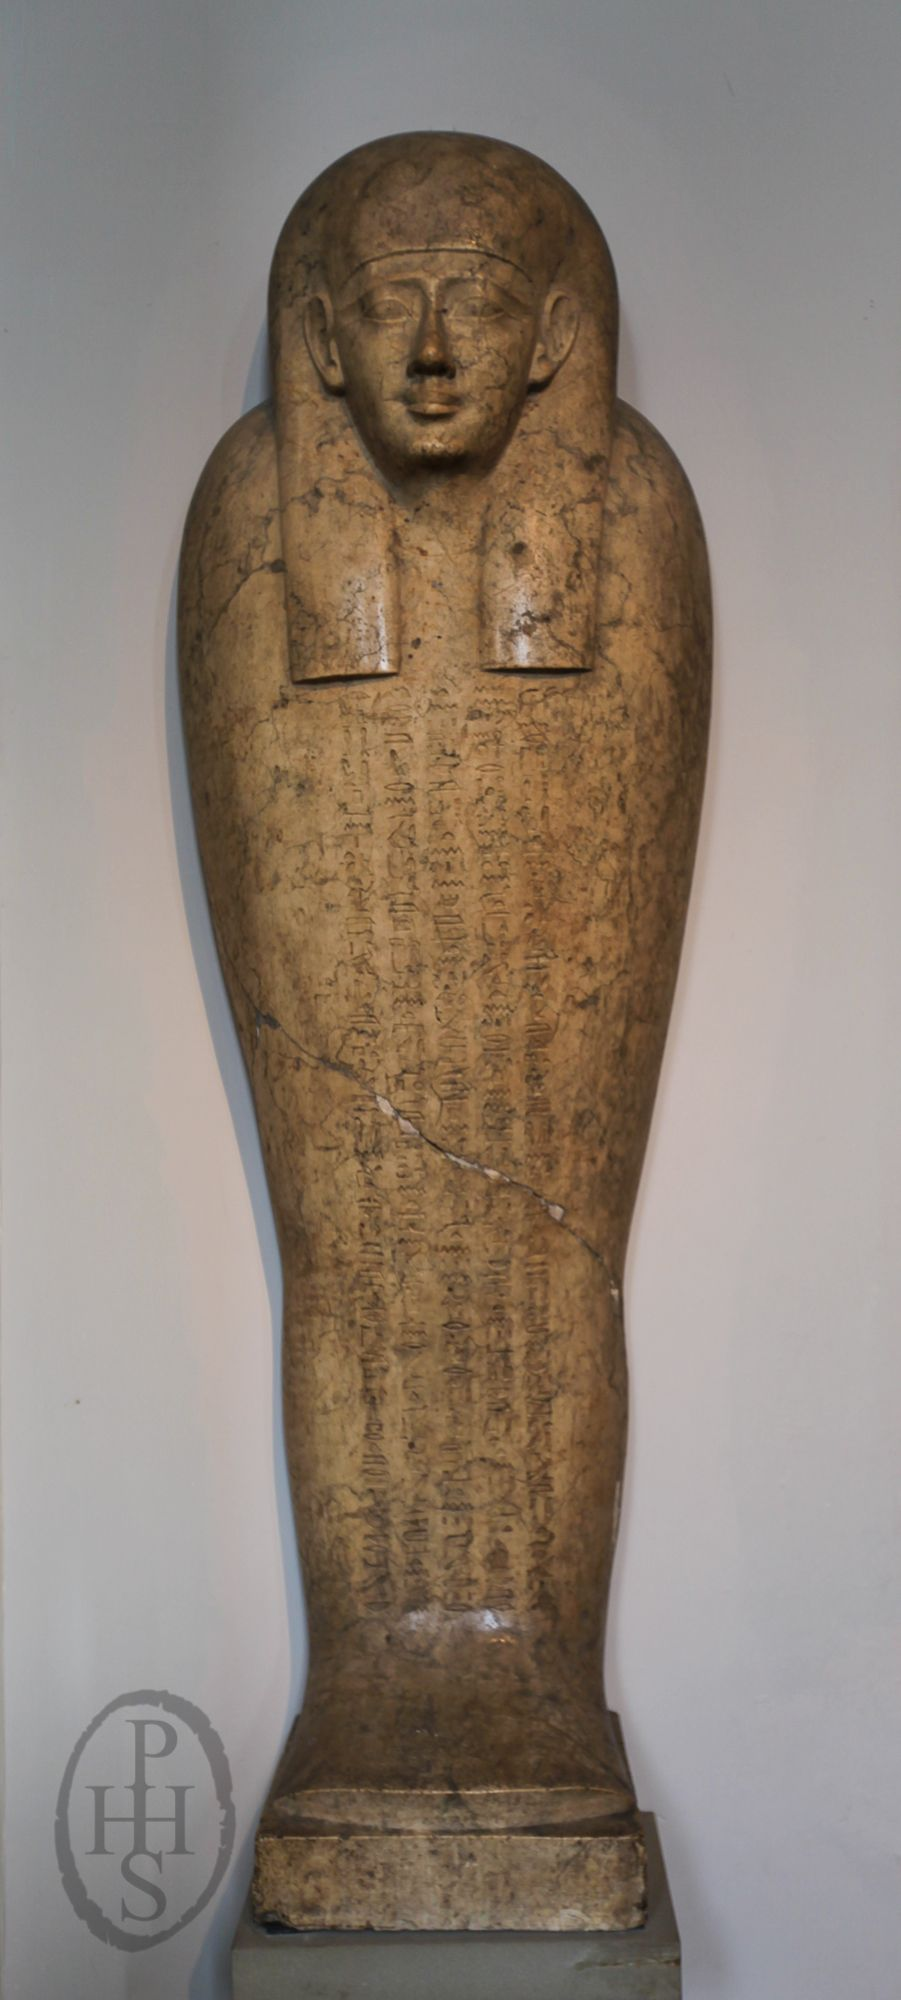 Limestone anthropoid coffin of Pedienese, the body is elaborated with five vertical registers of hieroglyphs, containing part of Chapter 72 of the Book of the Dead, partly restored. Room 4: Egyptian sculpture,  British Museum